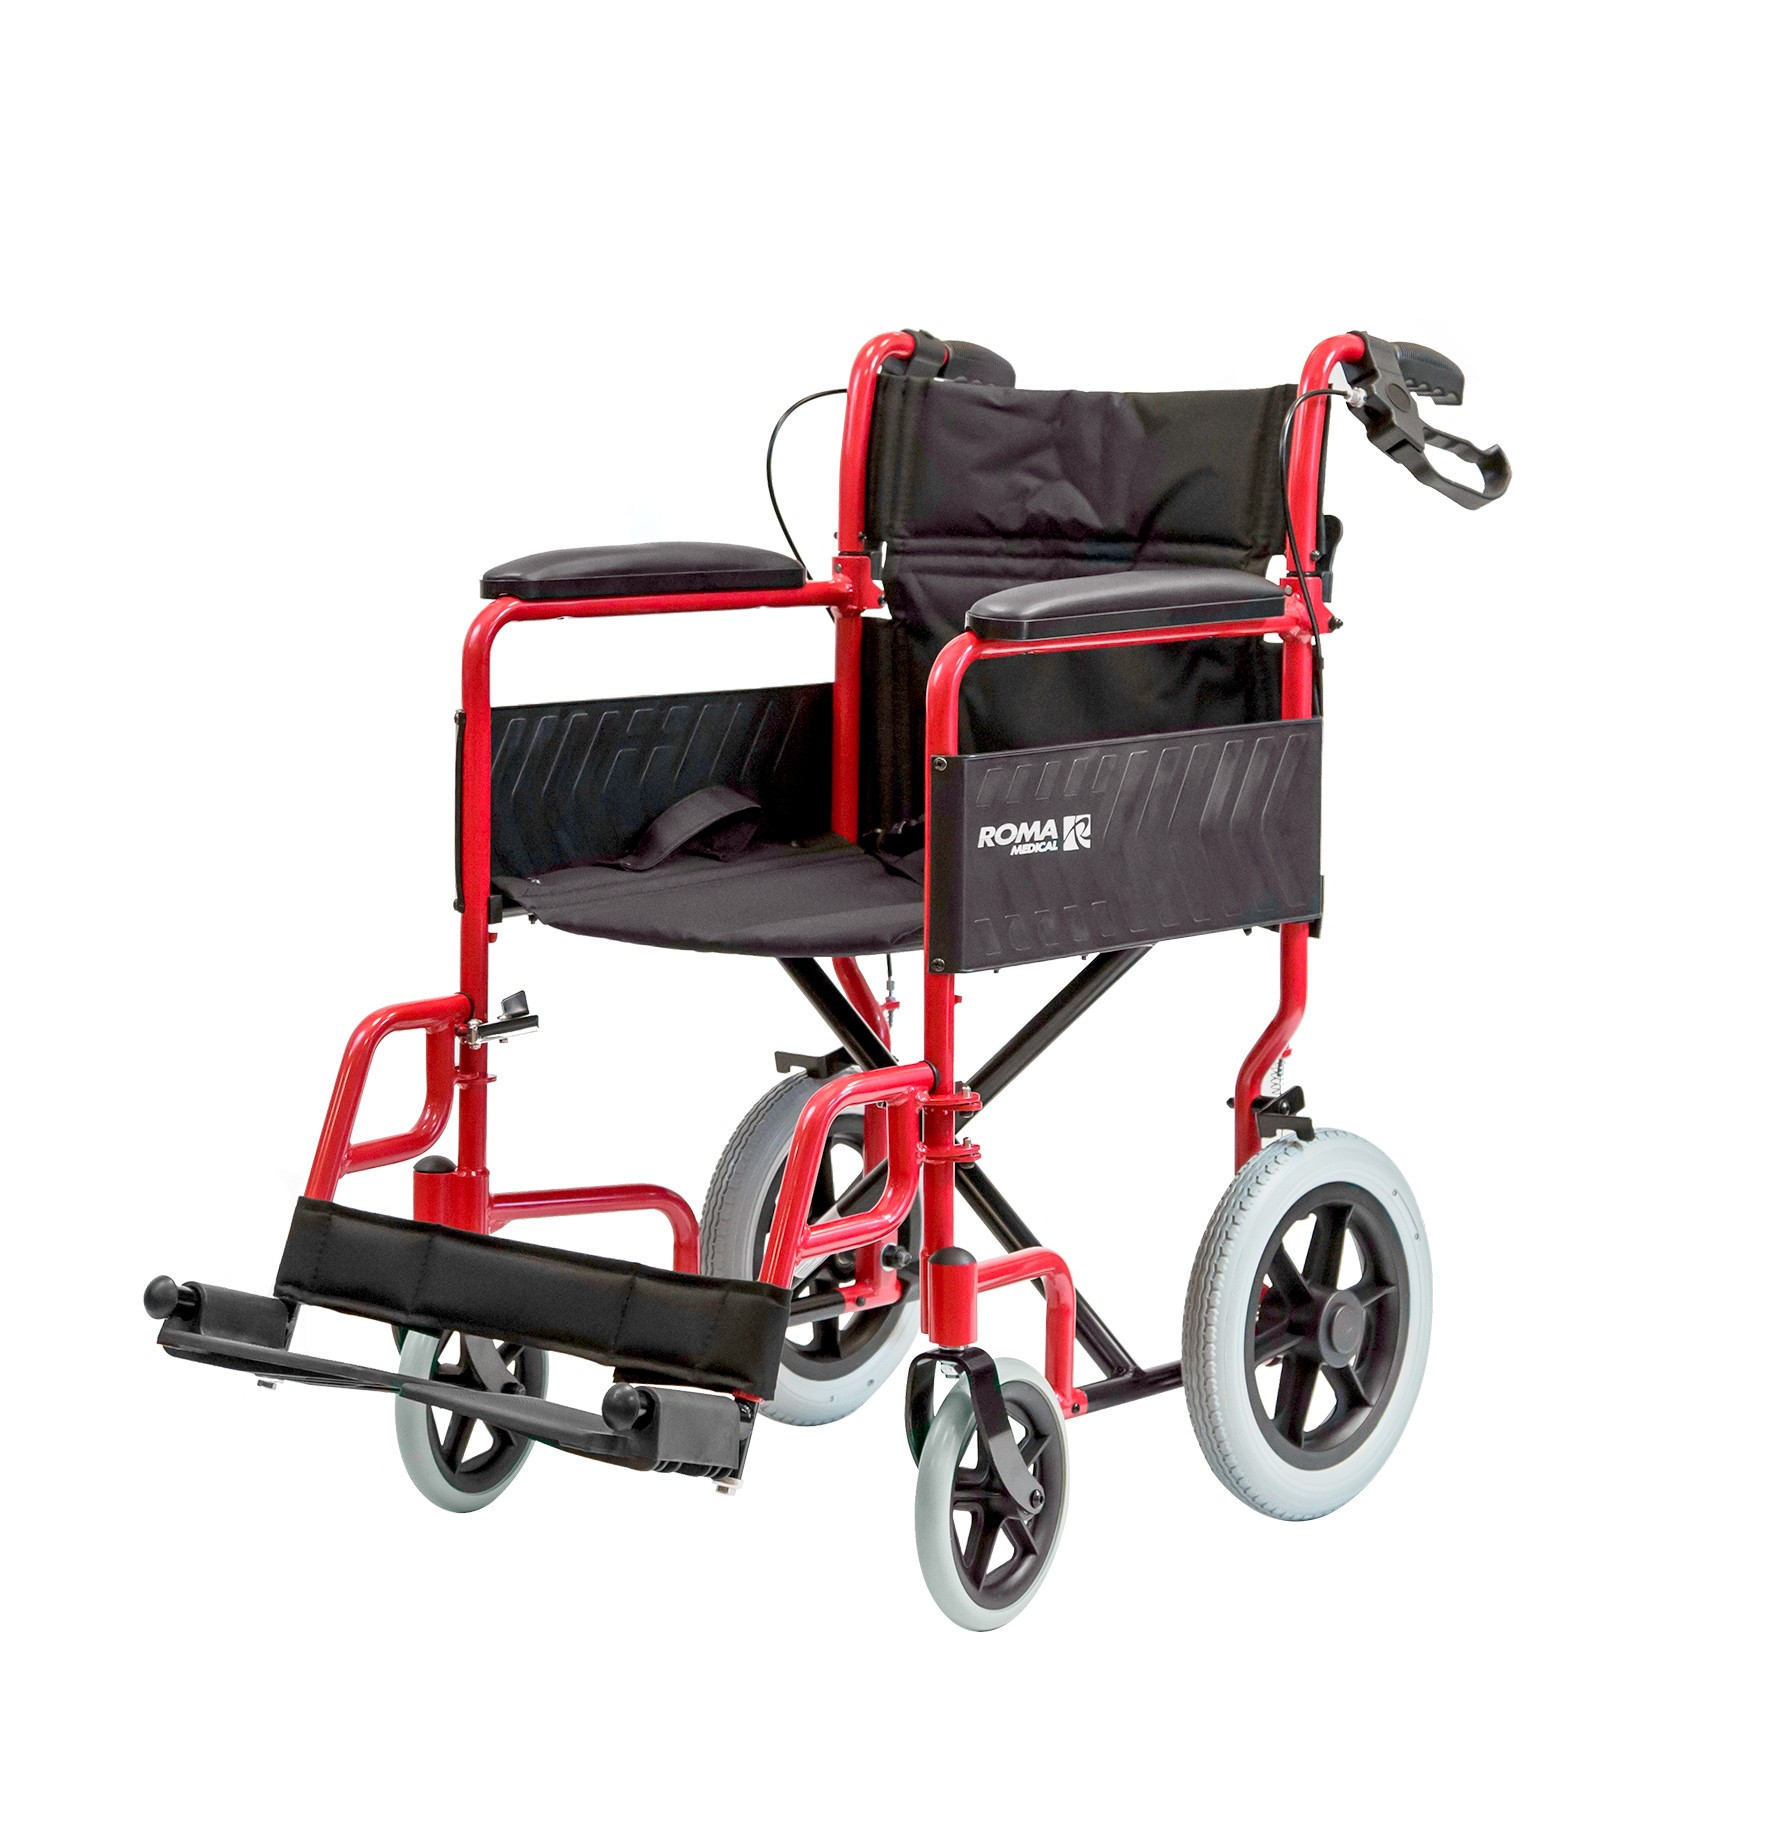 wheel chair in delhi brushed stainless steel dining chairs lightweight car transit wheelchair uk wheelchairs